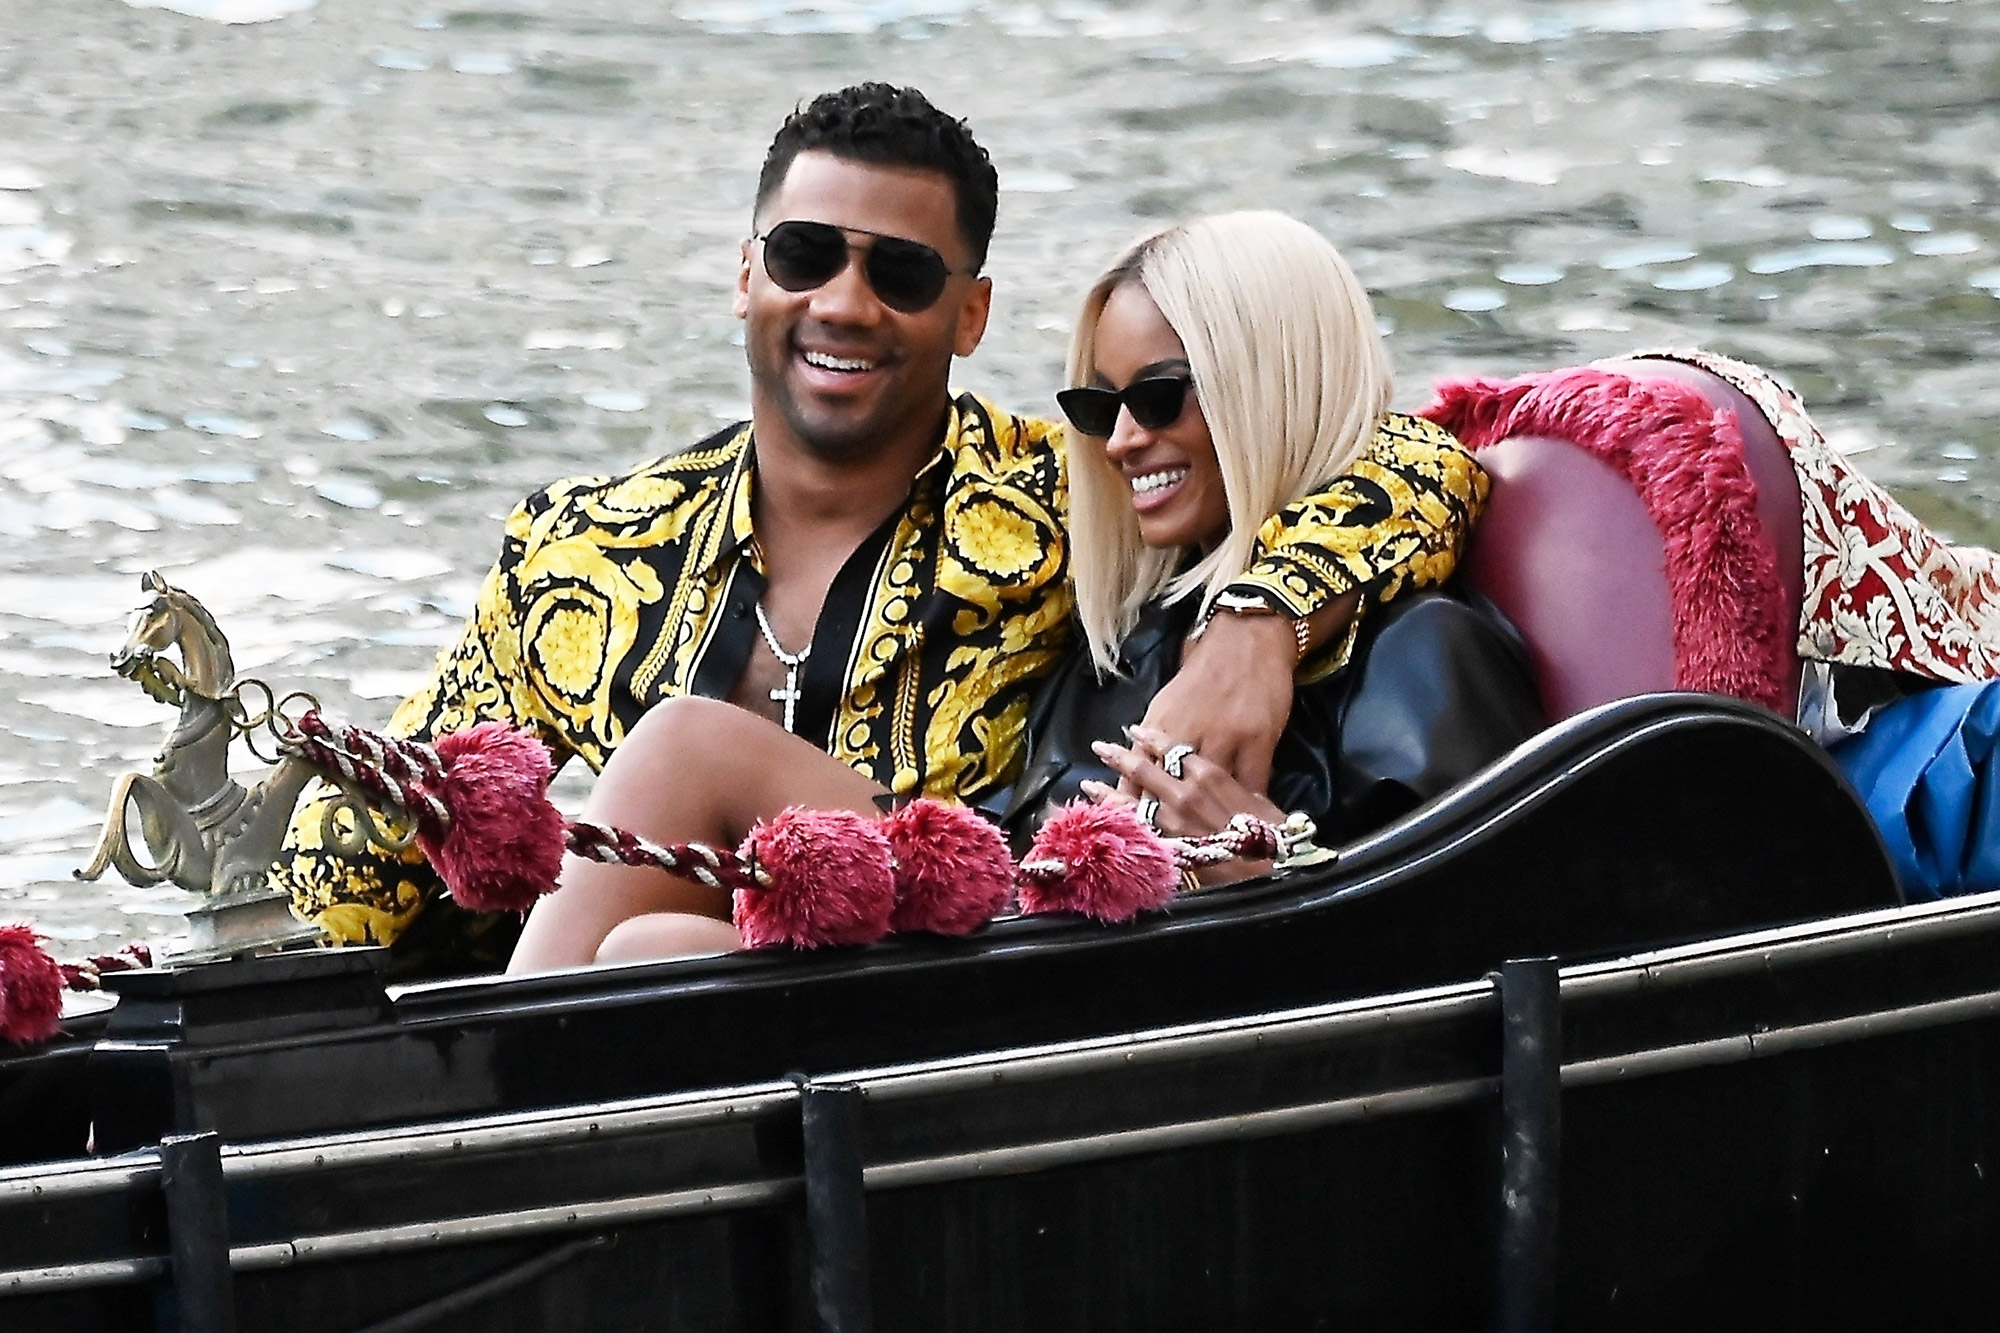 Ciara and Russell Wilson are loved up and packing on the PDA while enjoying Gondola ride in Venice!